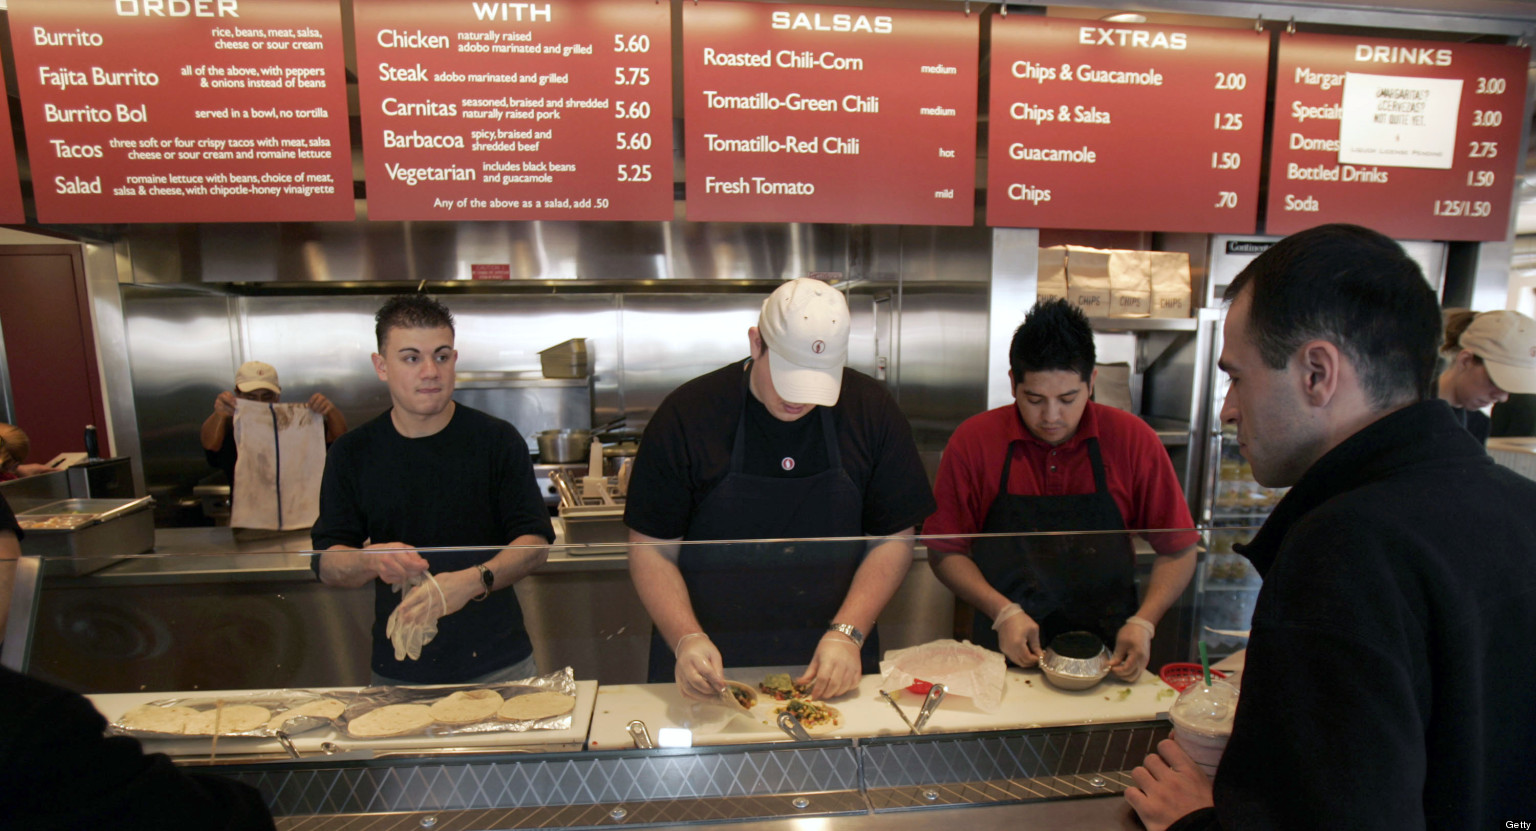 Chipotle Reveals Use Of Controversial Ingredient